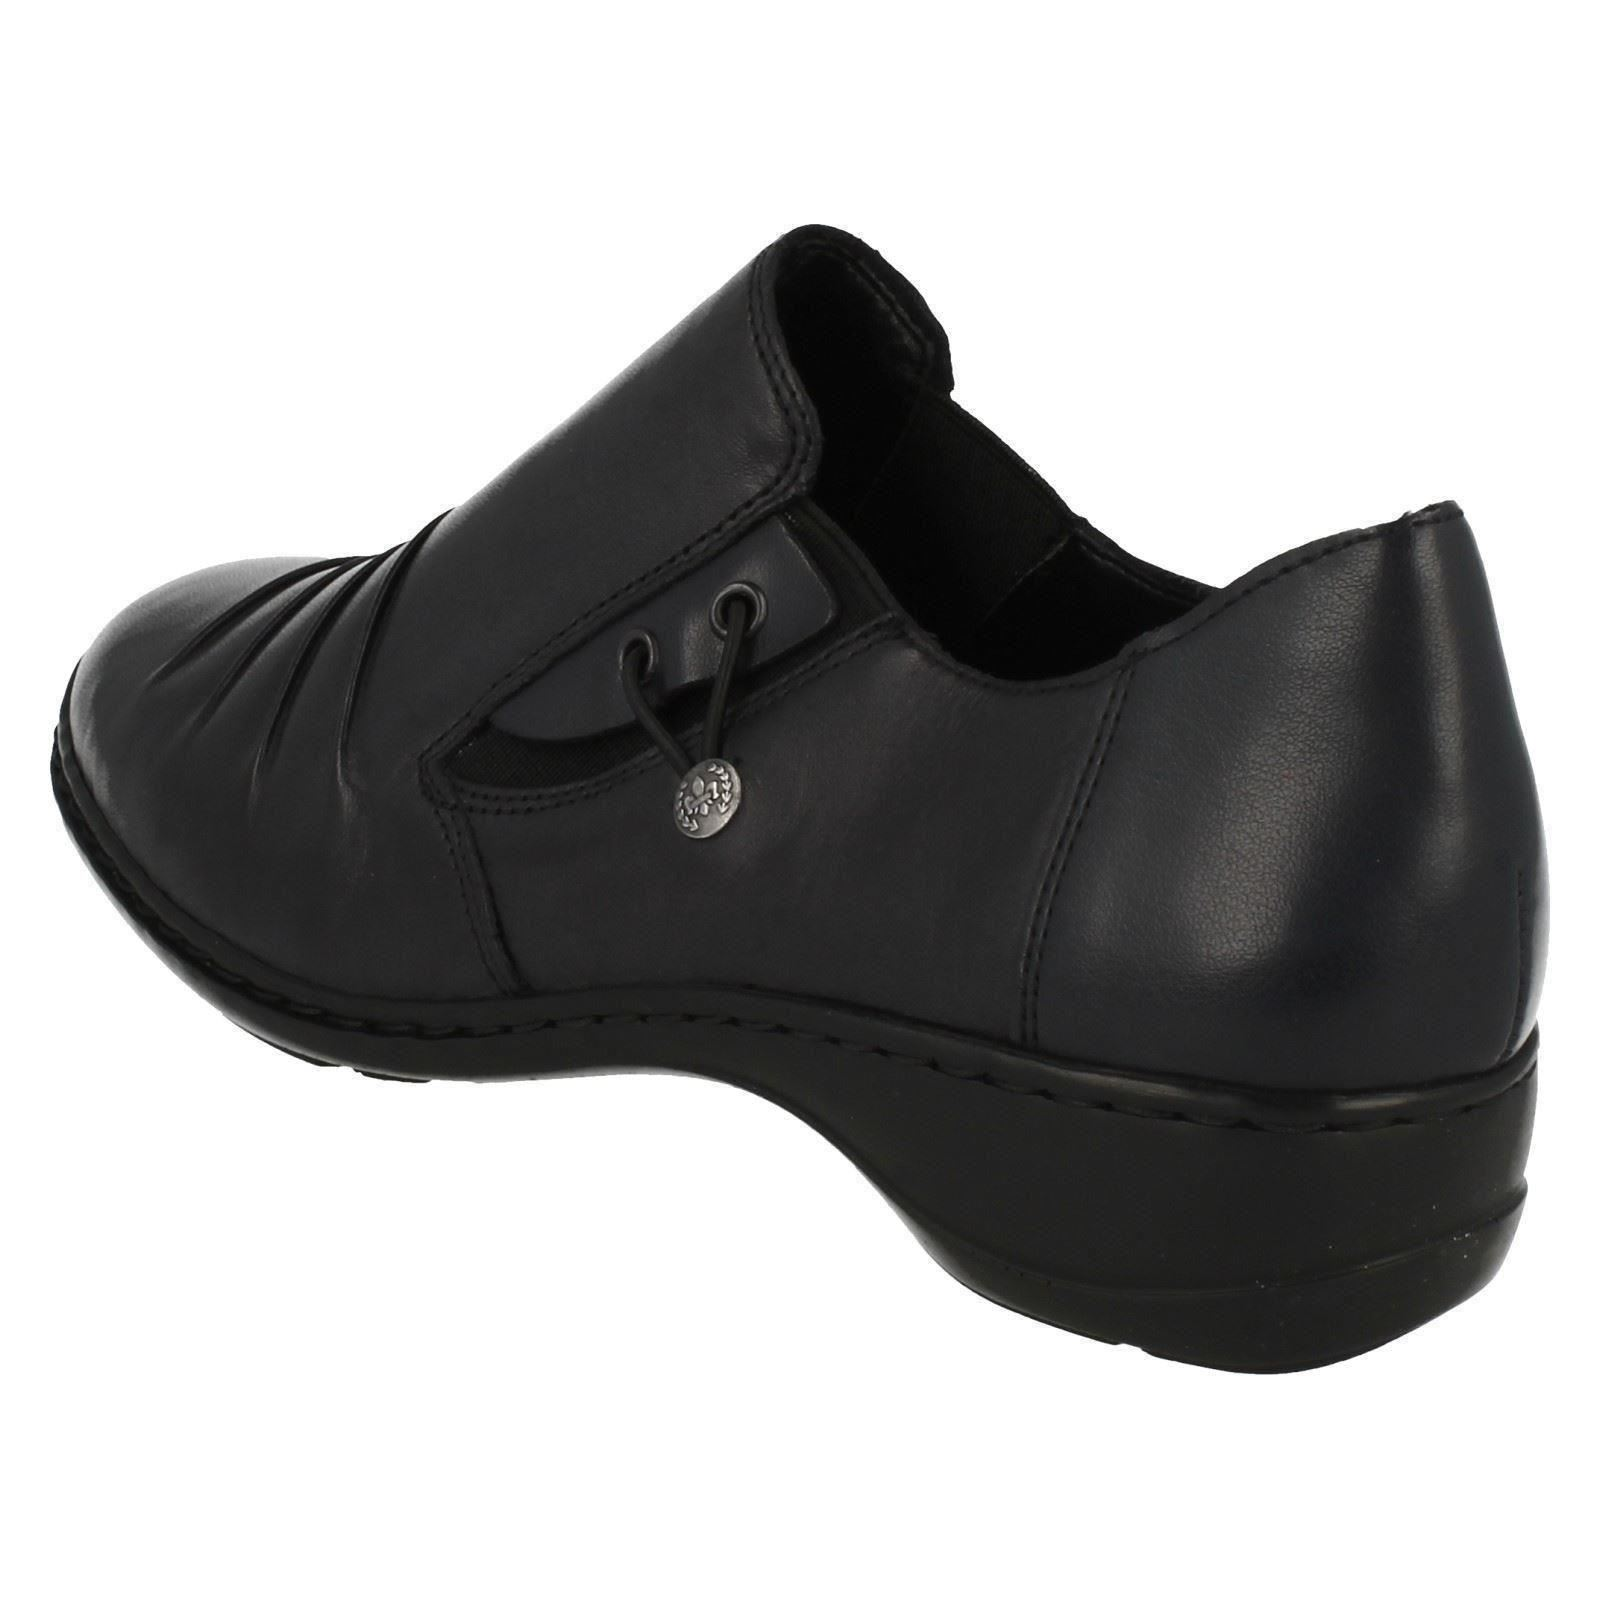 rieker antistress low wedge comfortable shoes 58353